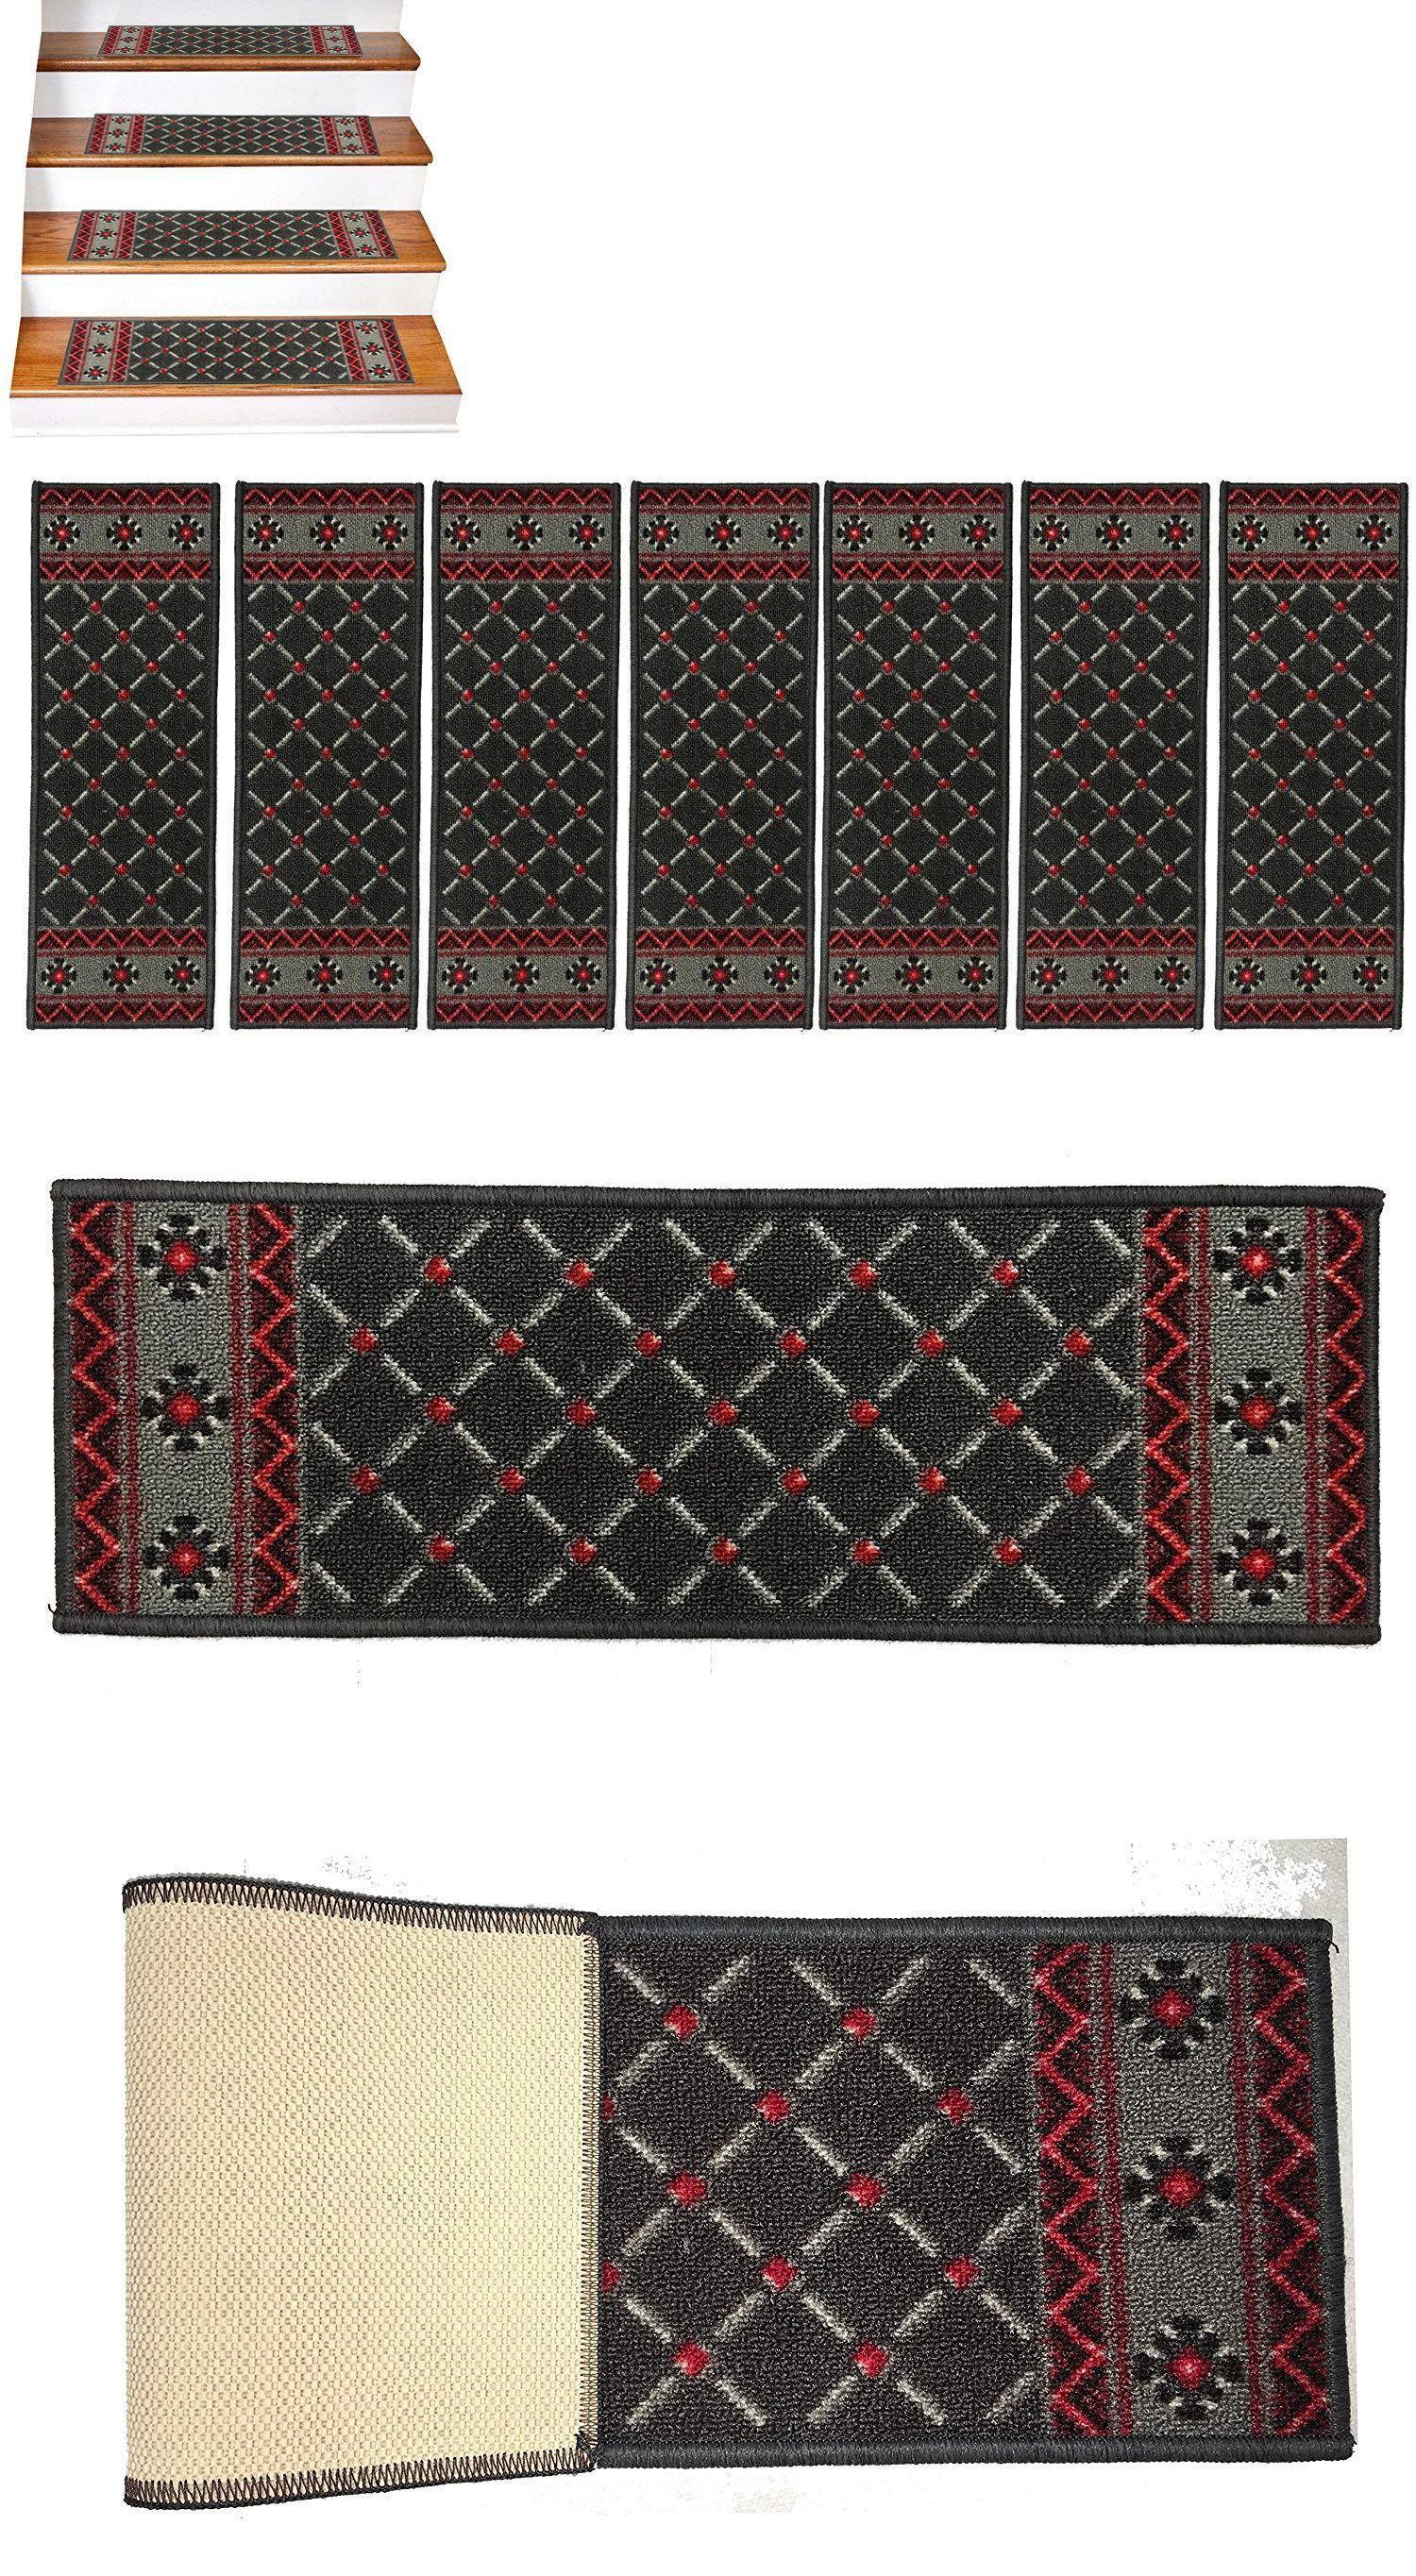 Stair Treads 175517 Gloria Washable Stair Mat Area Rug Set Of 7 | Gloria Rug Stair Treads | Mats | Area Rug | Stair Runners | Rubber Backing | Skid Resistant